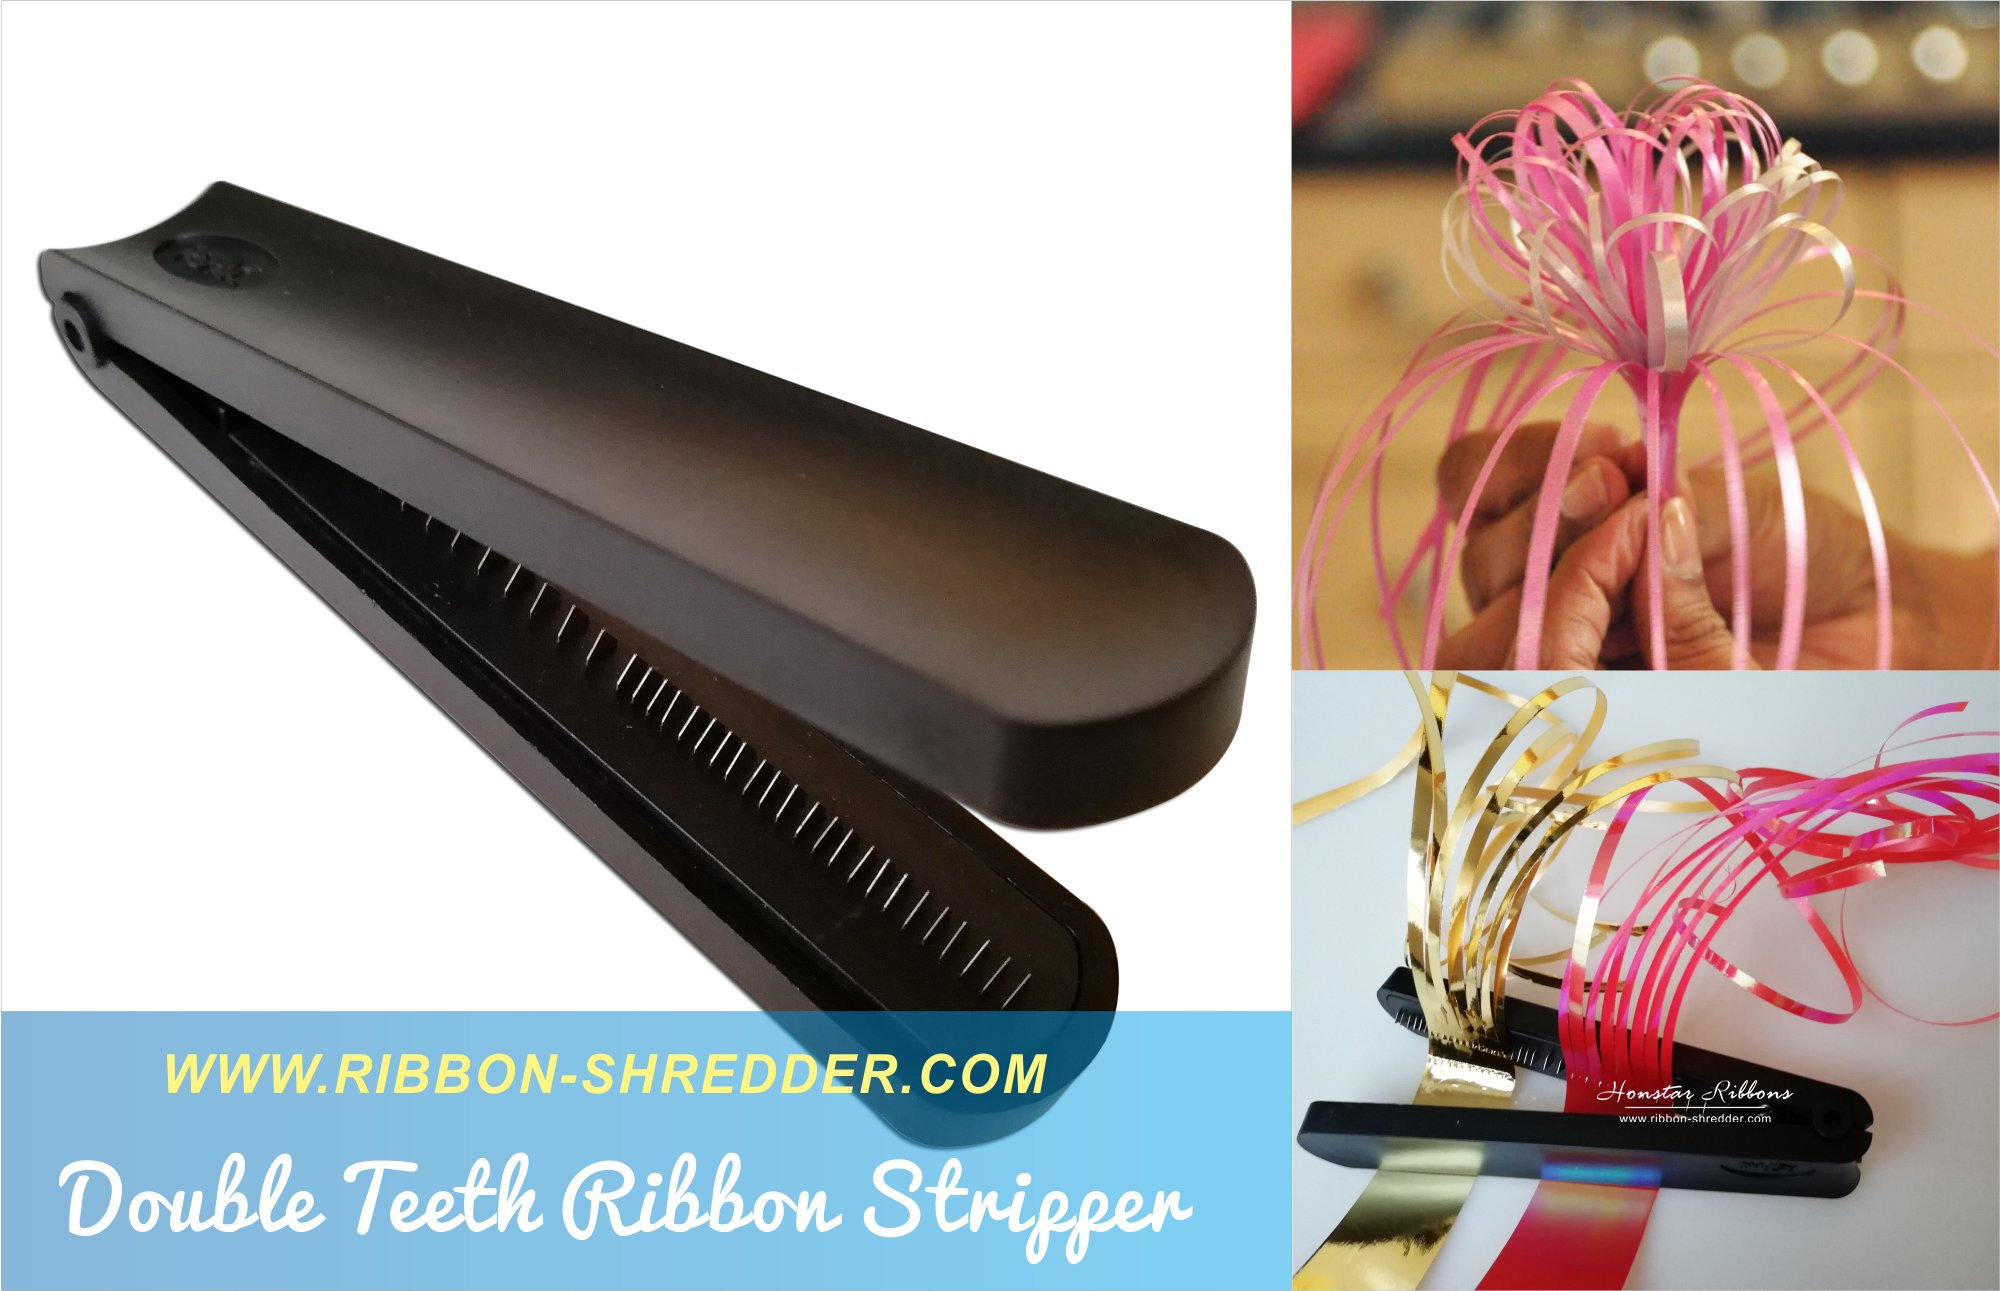 Ribbon Shredder Curler with Stainless Steel Blade Teeth for Laminated and Metallic Ribbons (Double)- RSPAC (TM) - Gift Wrapping Tool